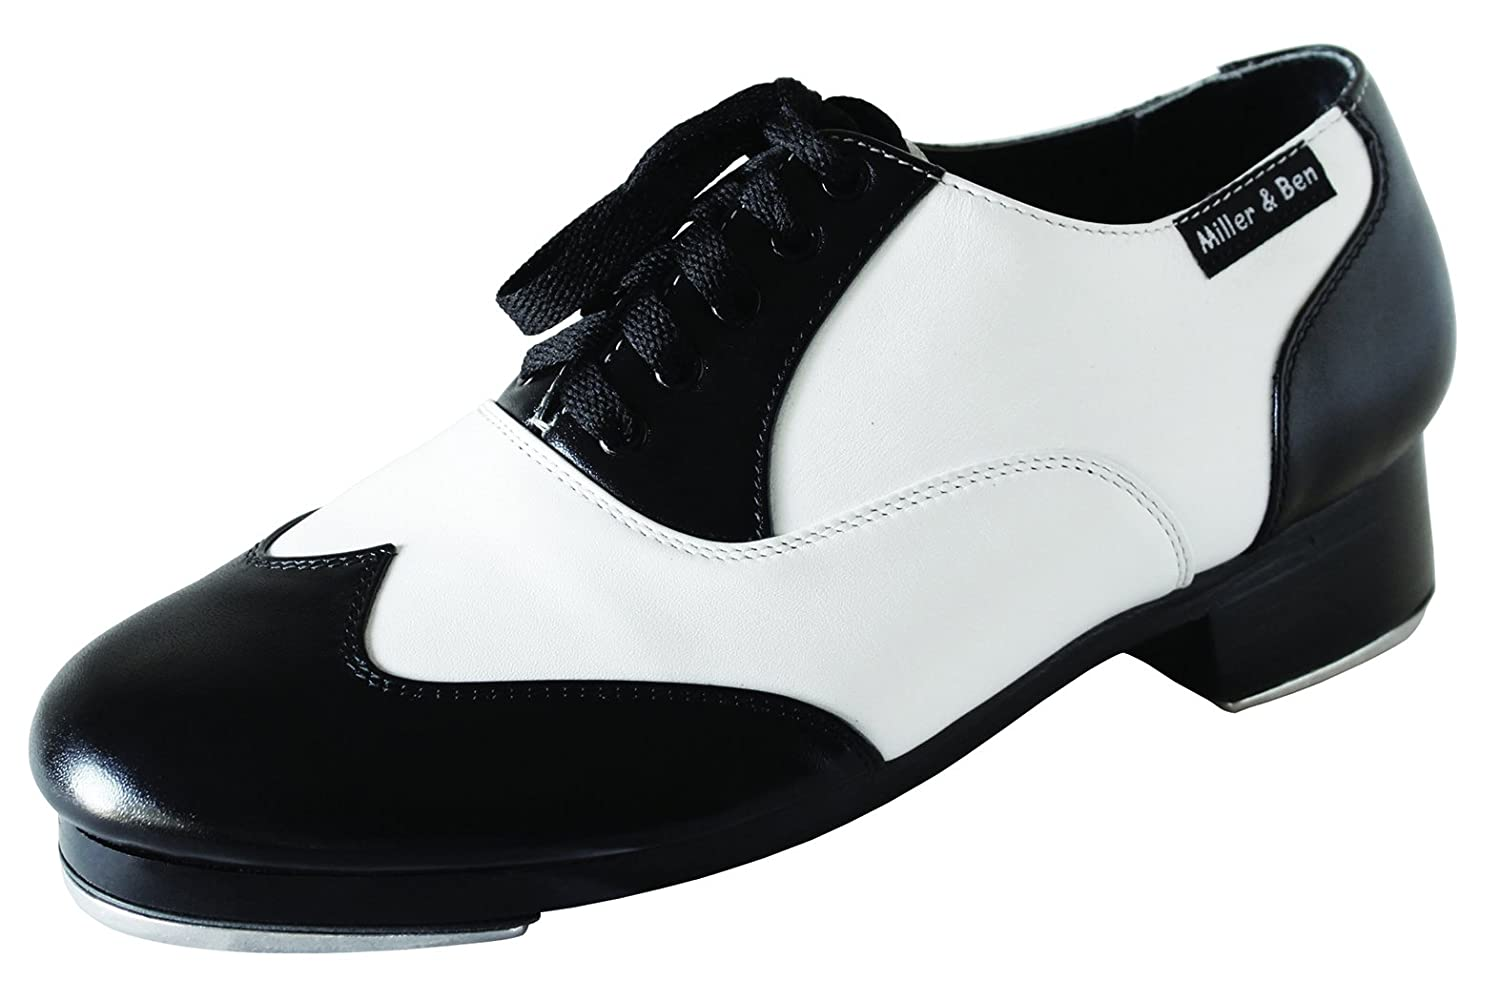 1950s Style Mens Shoes Miller & Ben Tap Shoes Jazz-Tap Master Black & White - STANDARD SIZES $285.00 AT vintagedancer.com